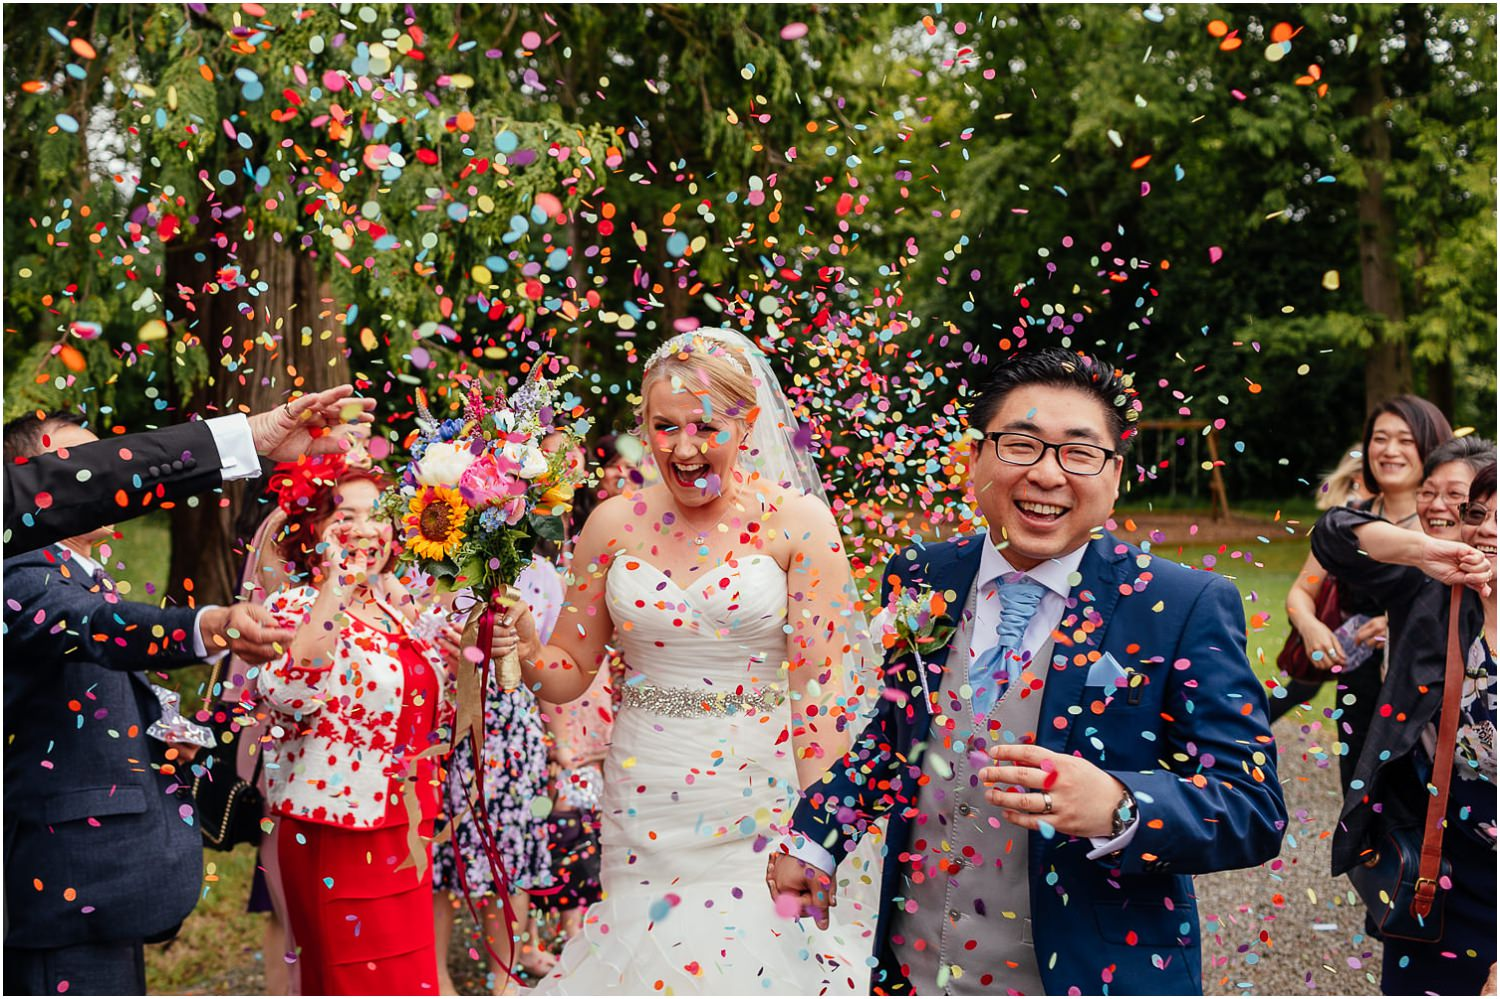 Cornhill Castle Wedding Colourful Confetti Photo Chinese Scottish Wedding Couple